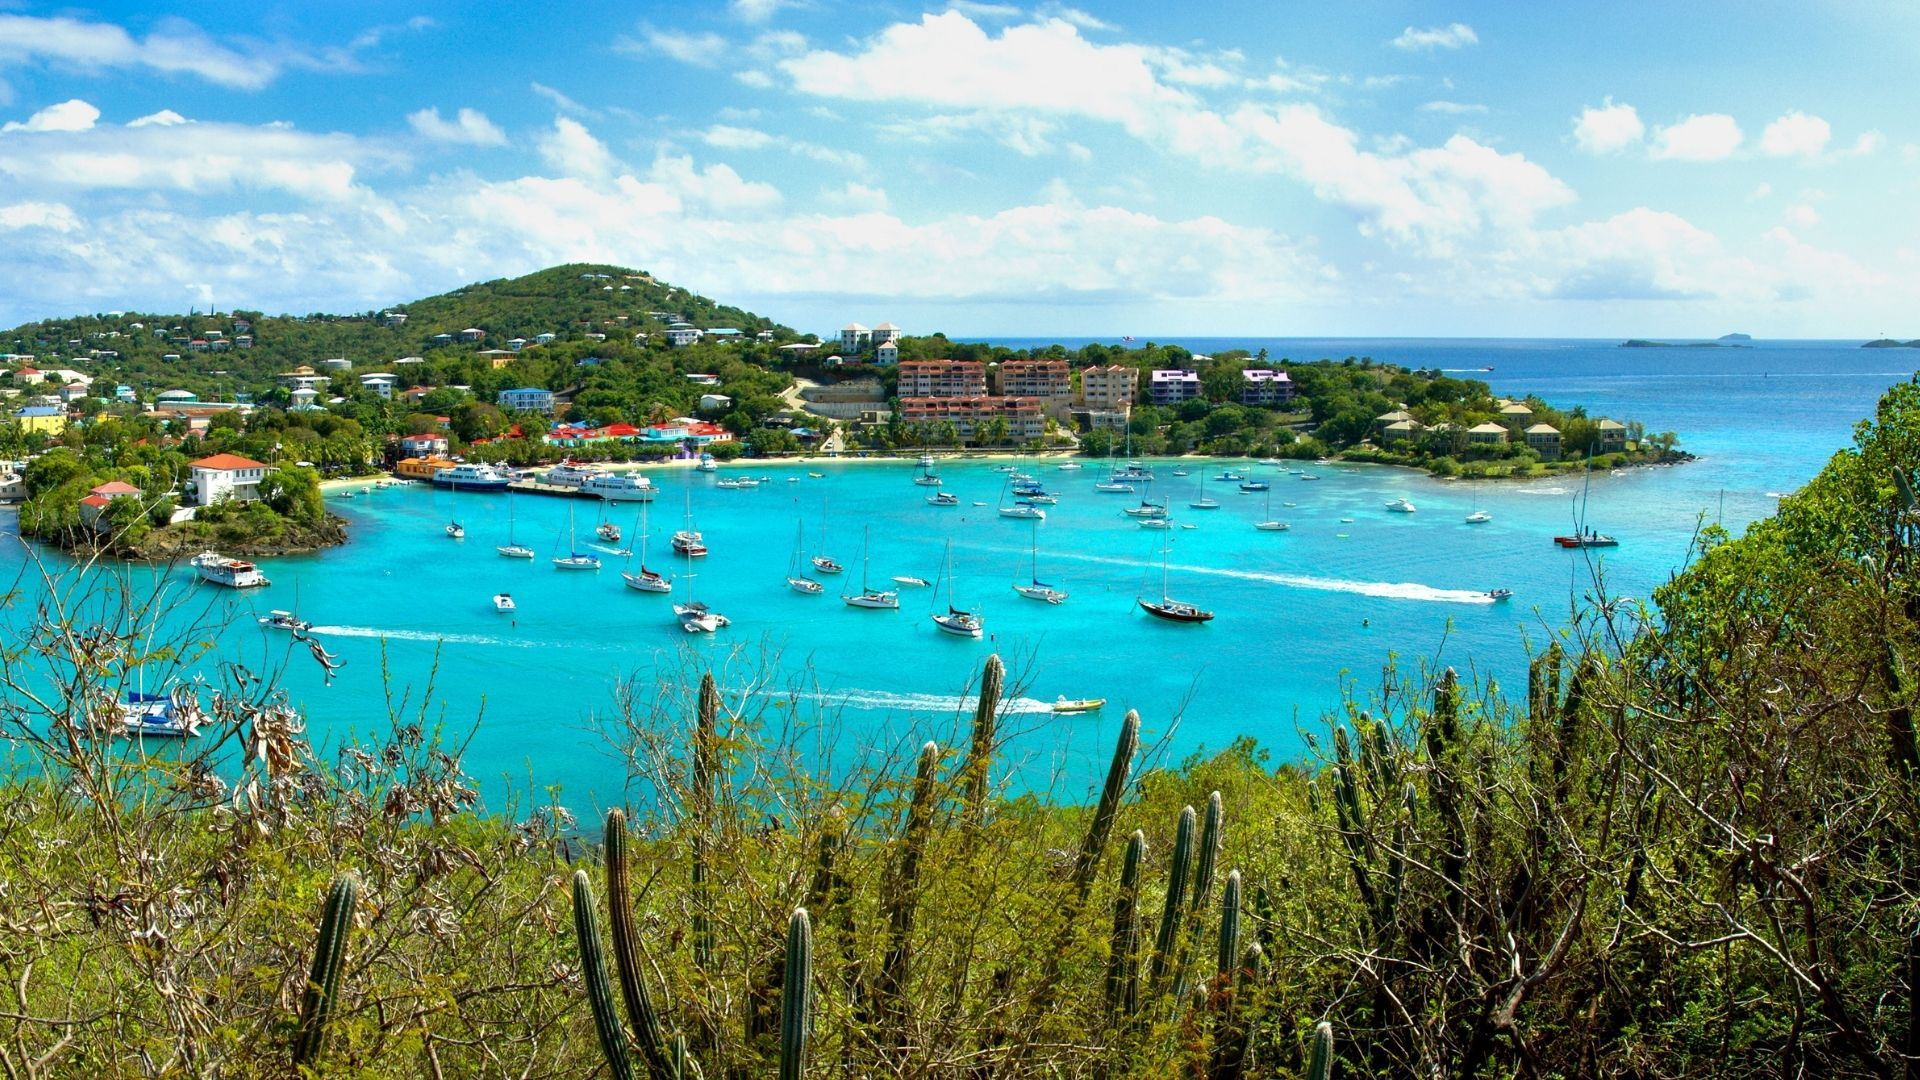 USVI best vacation spots for couples on a beach